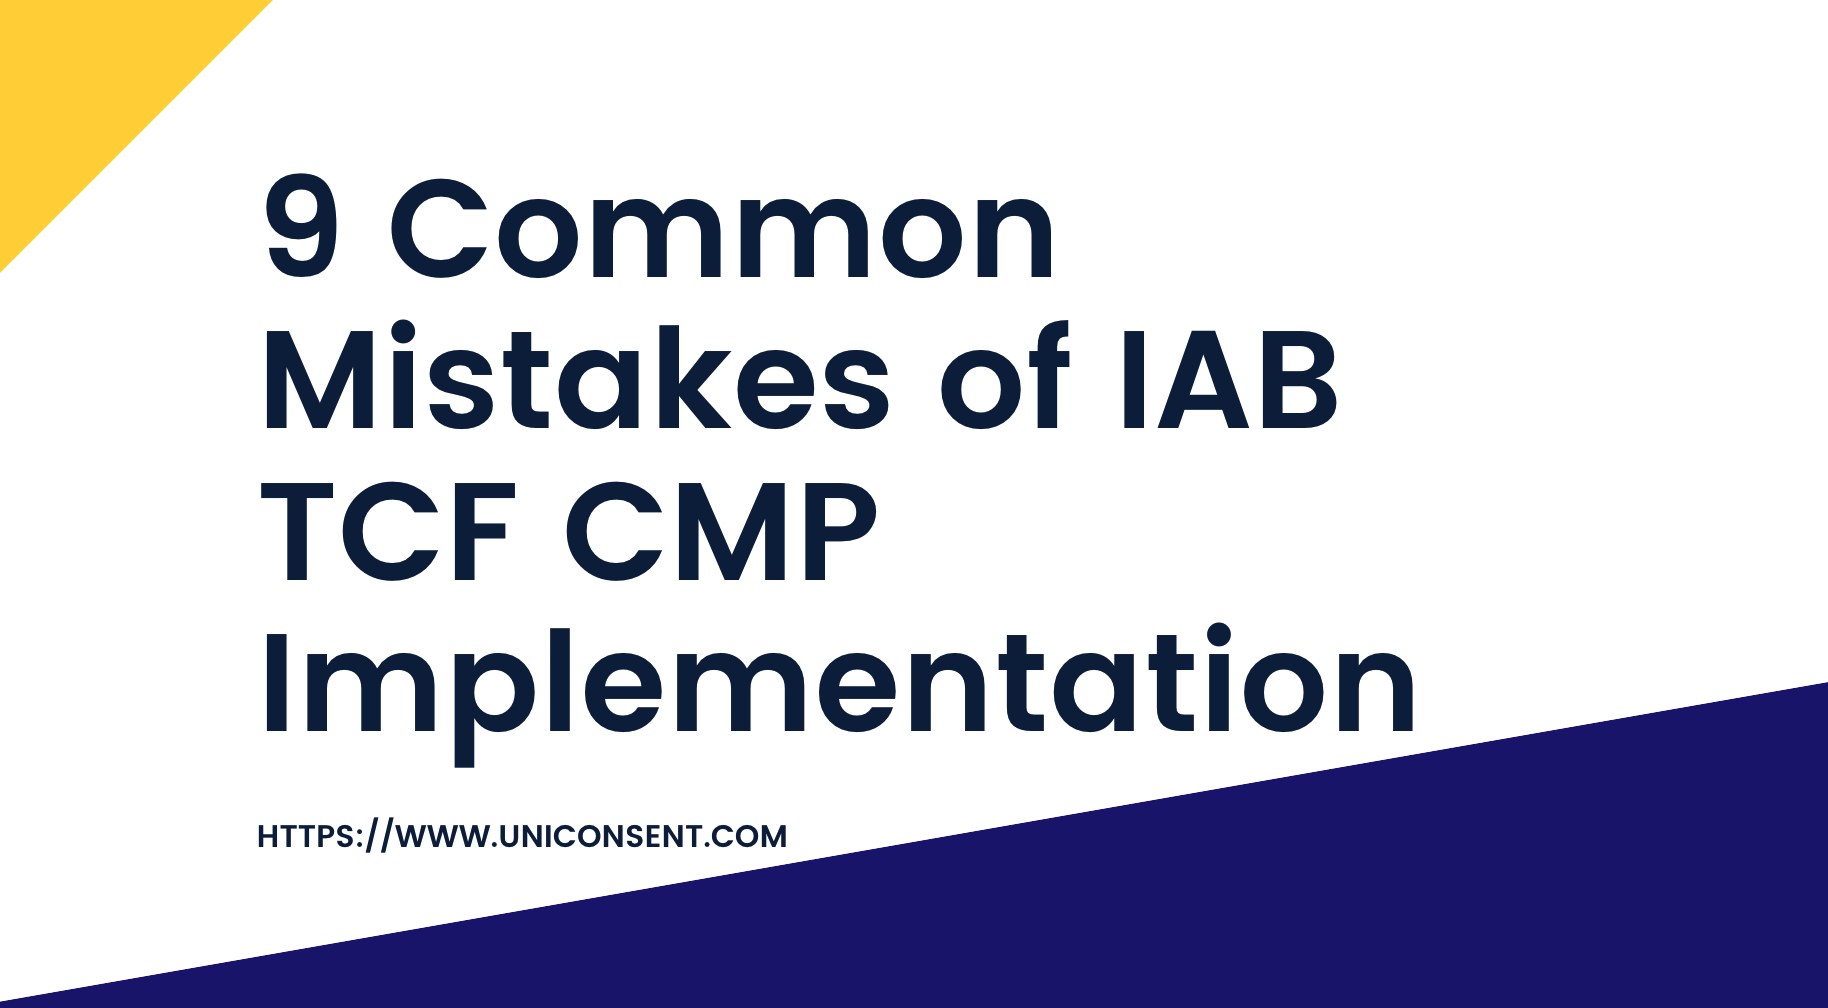 9 most common mistakes of IAB TCF CMP implementation